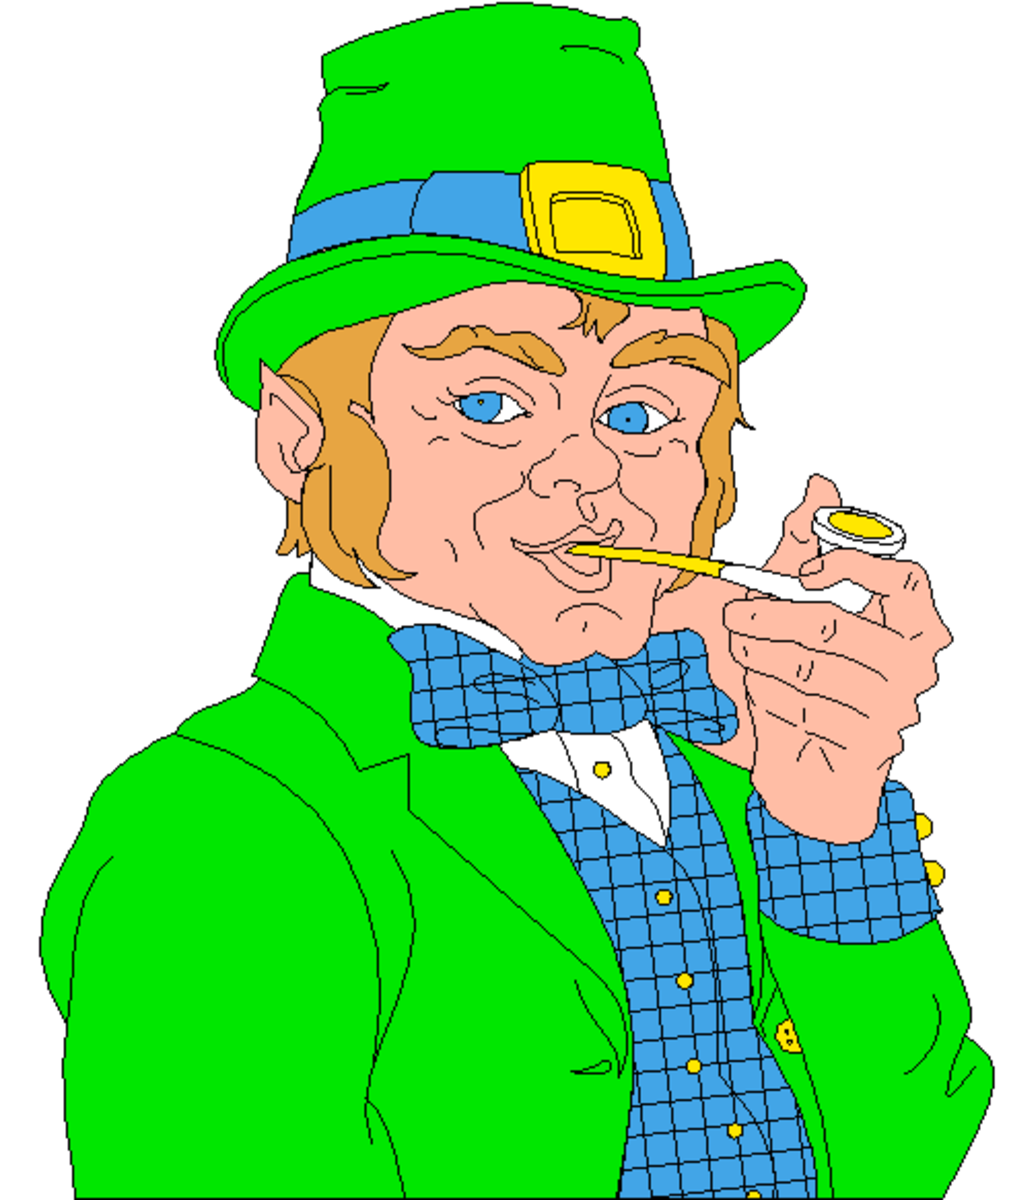 Leprechaun in Green Suit Smoking a Pipe